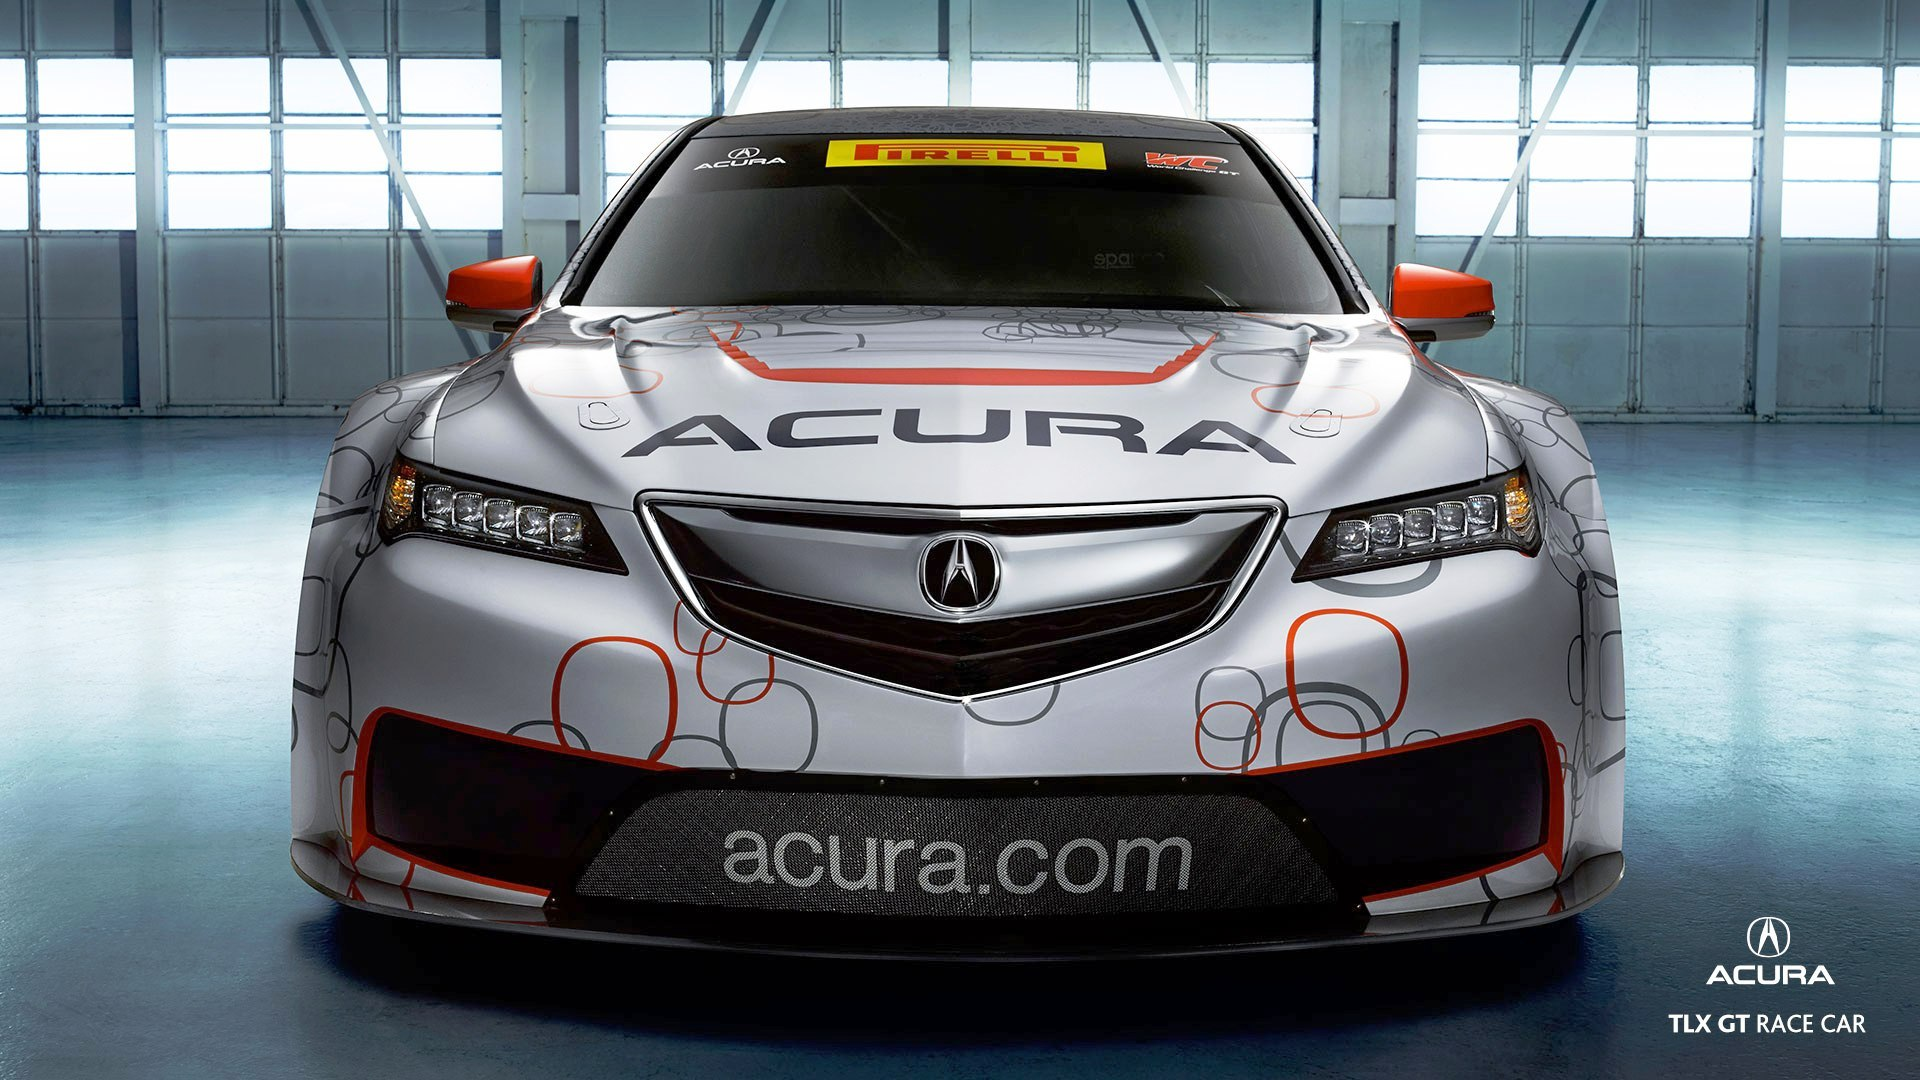 Acura Tlx Gt Racecar Boosts Off Tlx Lanuch With Hp Twin Turbo Sh Awd